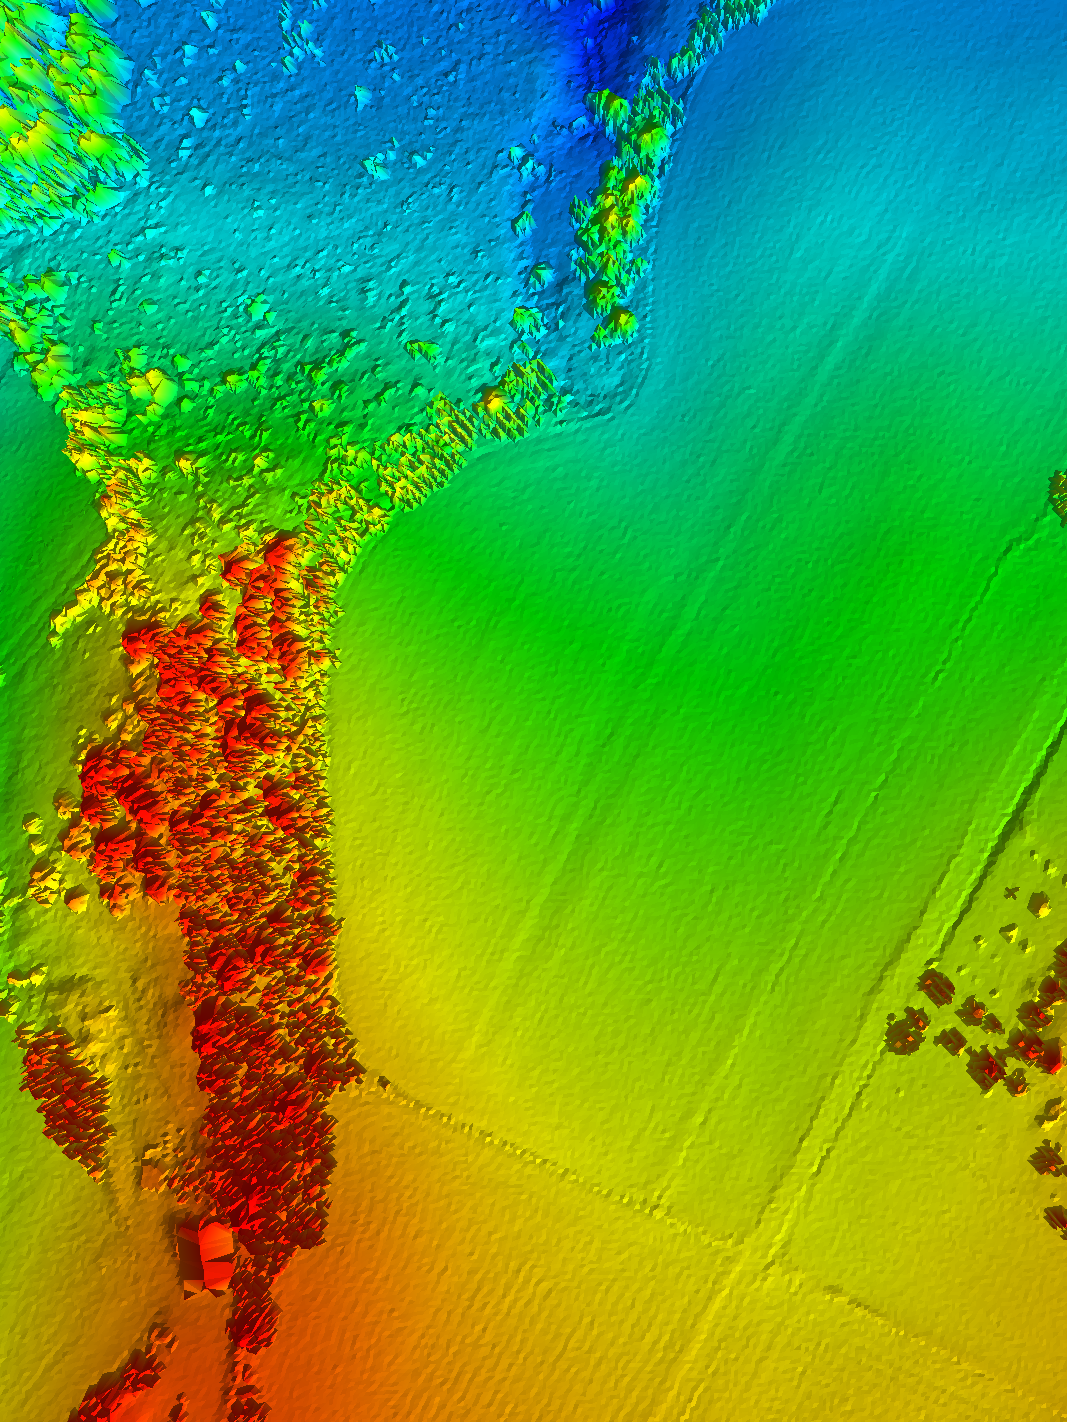 4 New Technologies That Are Driving Archaeology Into the Future